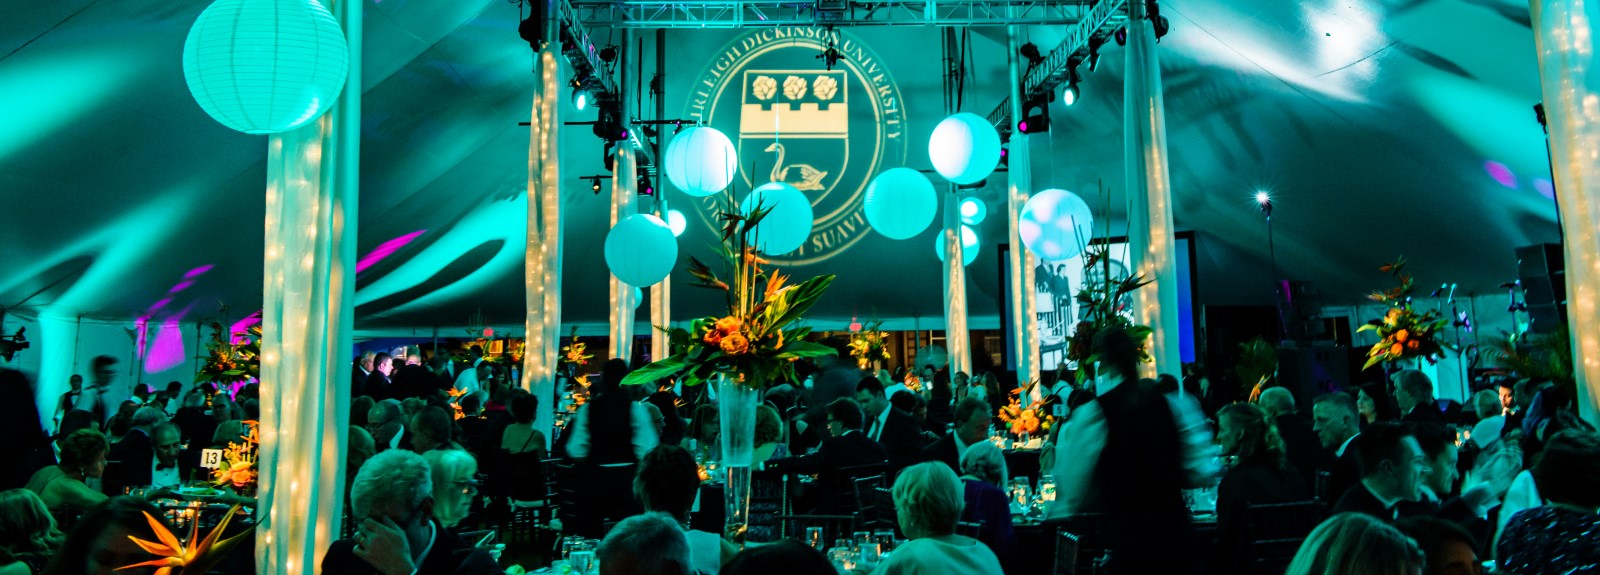 Charter Day Tent